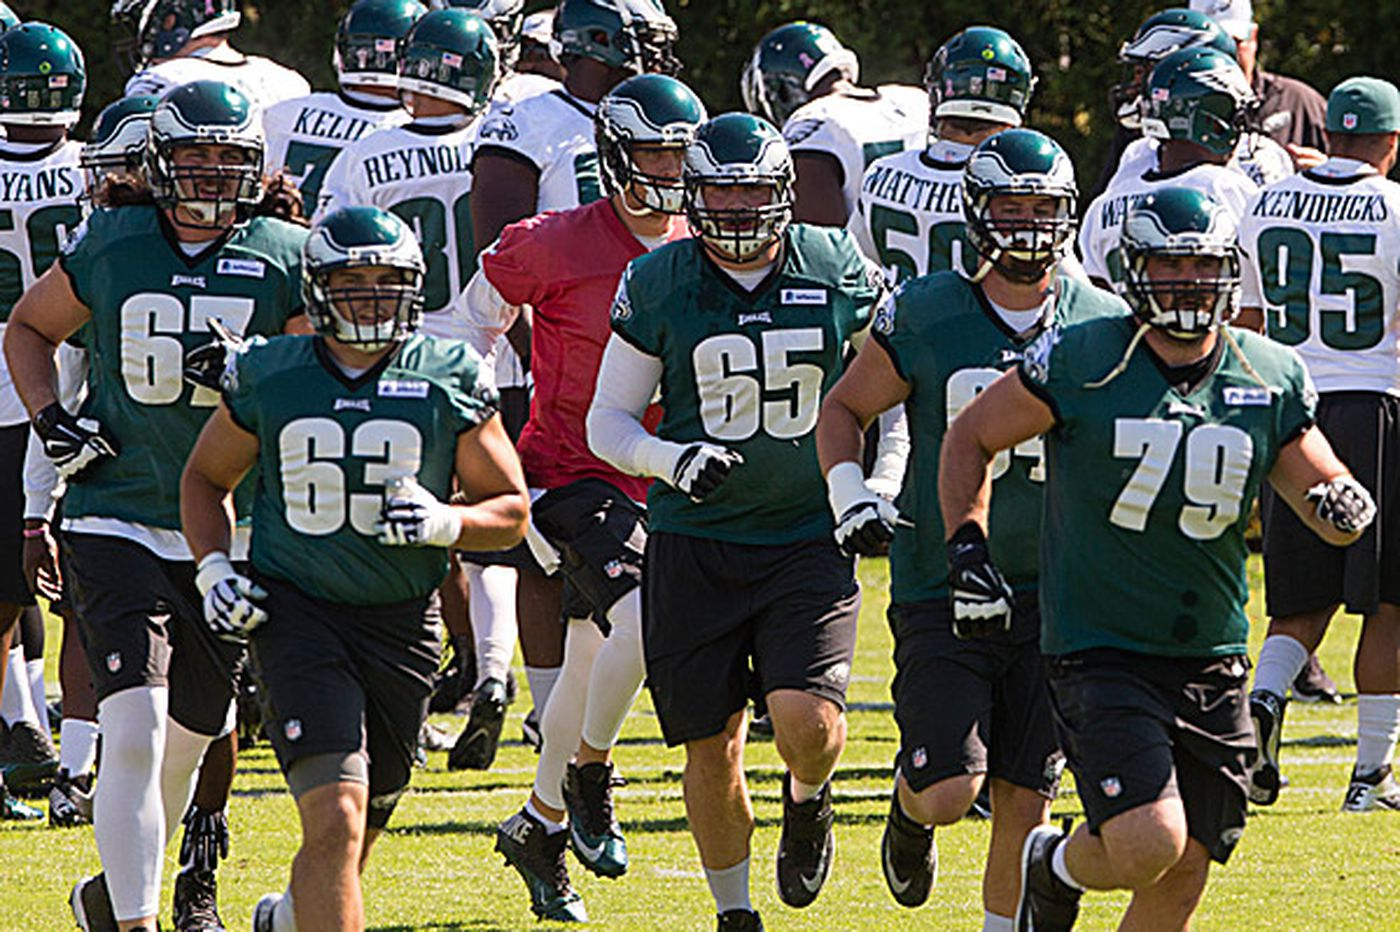 Eagles' season not playing out as expected